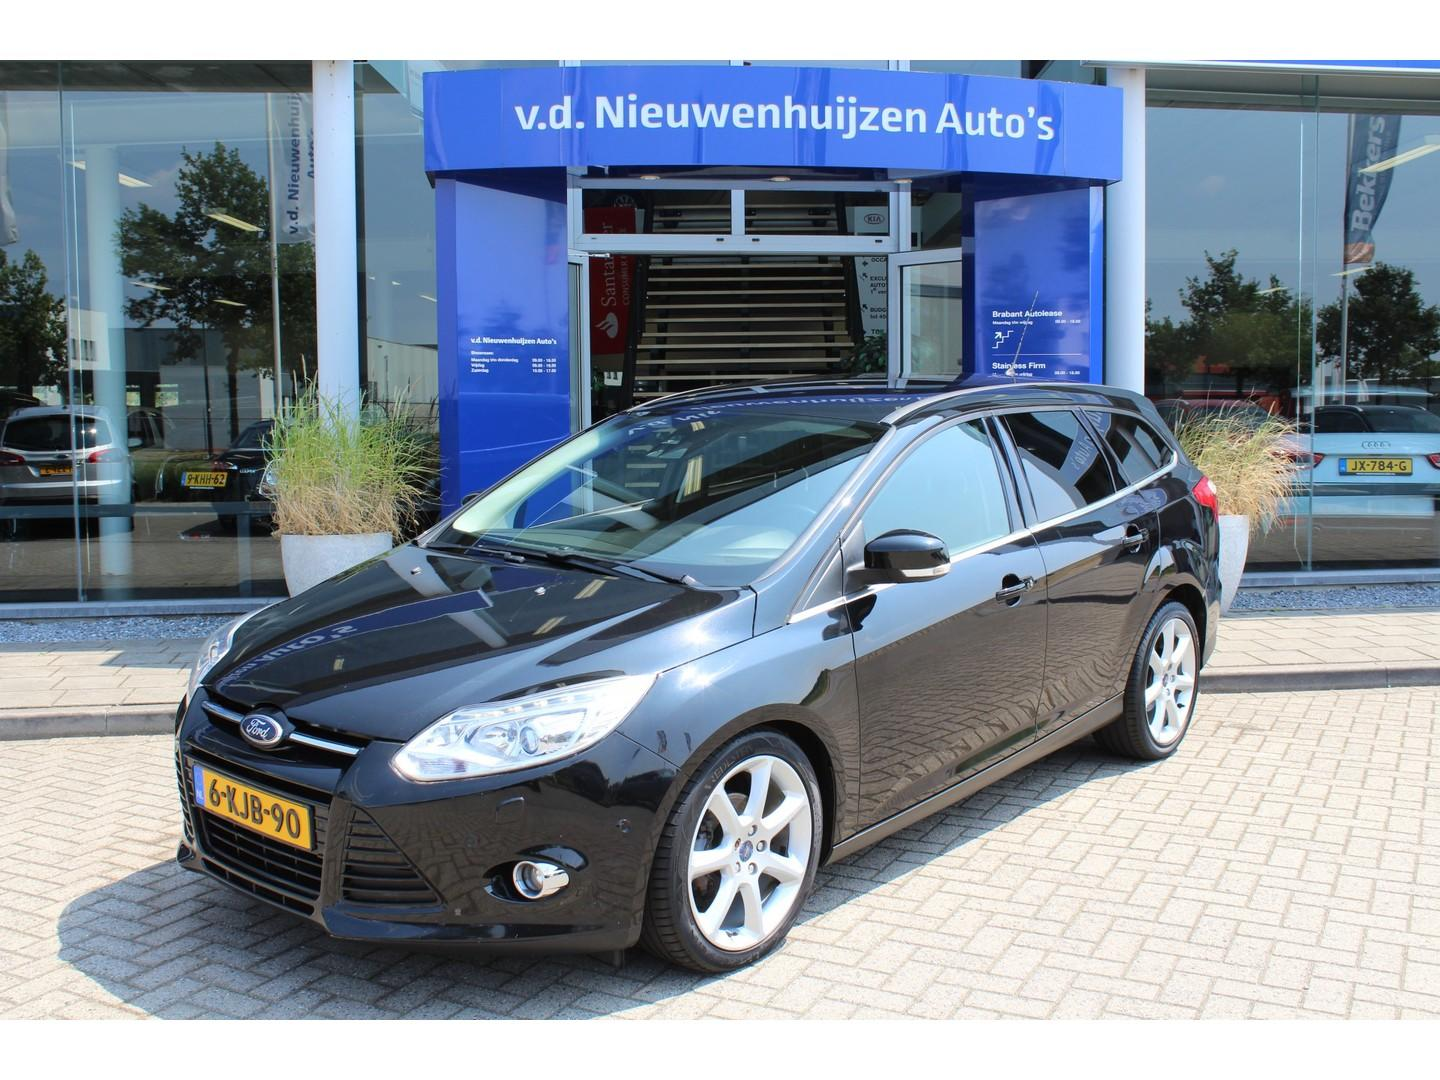 Ford Focus Wagon 1.6 tdci econetic lease titanium € 8.950,- 169 p/m navigatie xenon 18 inch lmv pdc v+a cruise bt